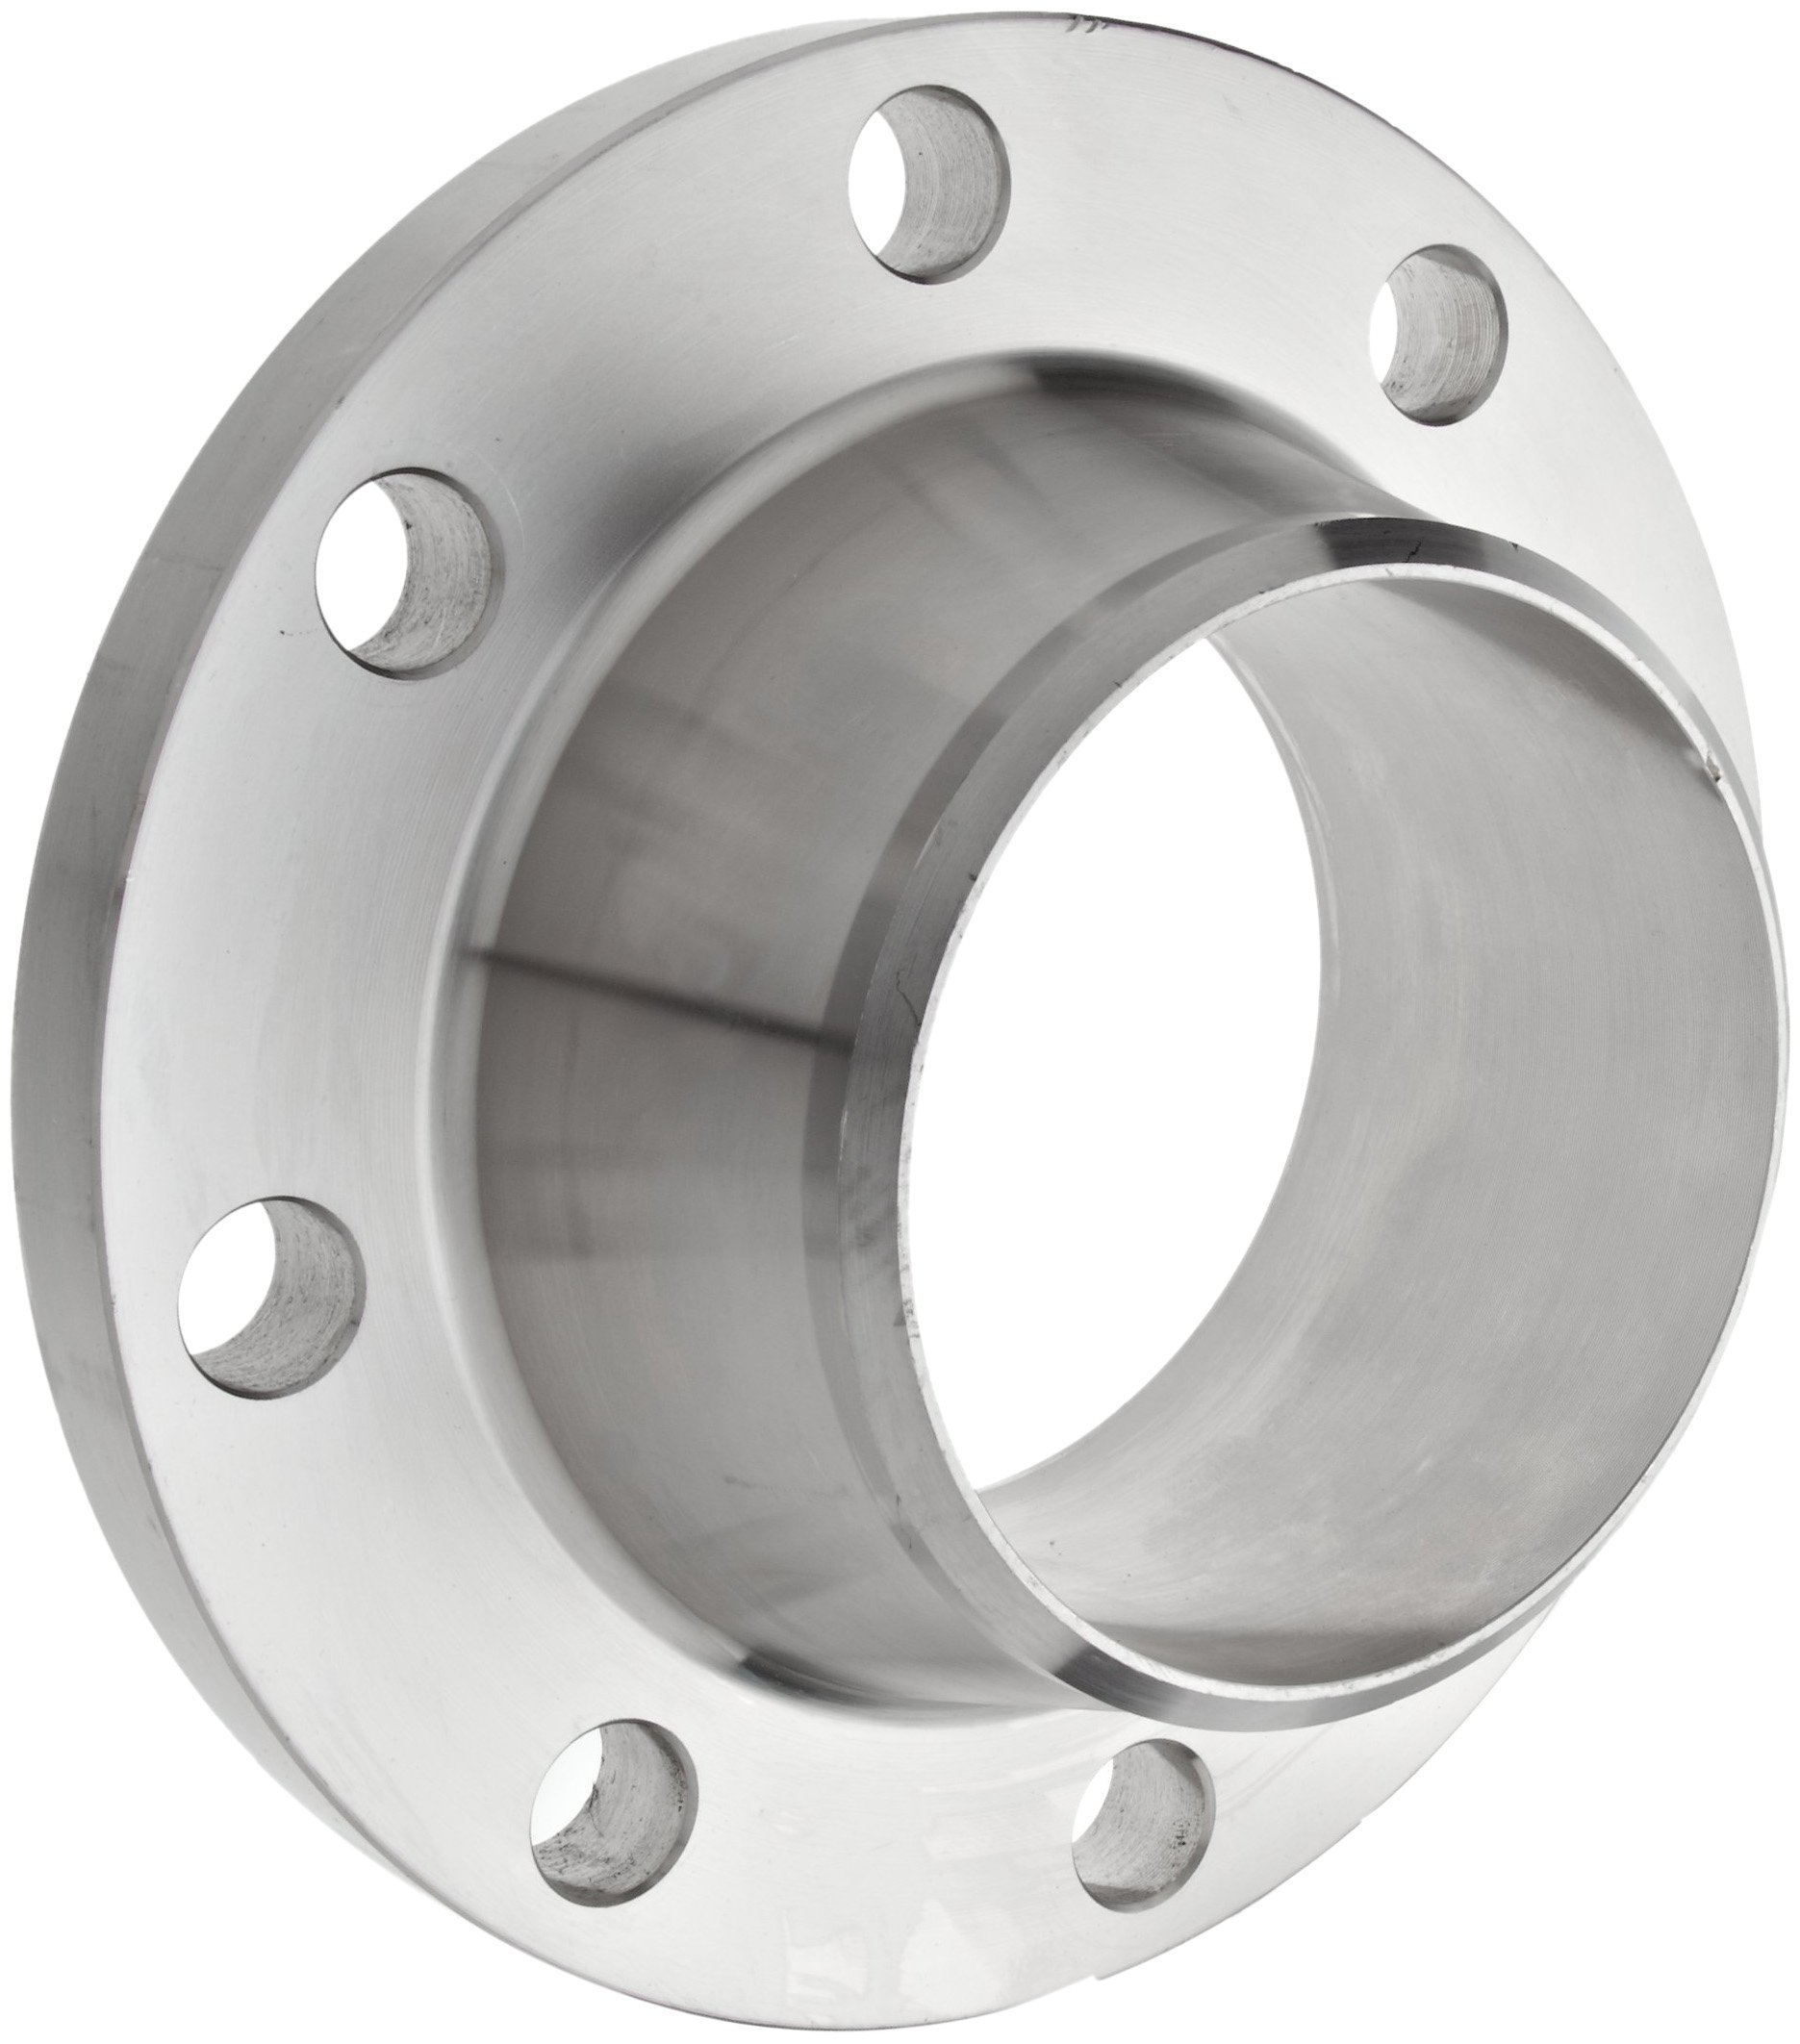 Stainless Steel 304/304L Weld Neck Pipe Fitting, Flange, Schedule 40, Class 150, 6'' Pipe Size by Merit Brass (Image #1)